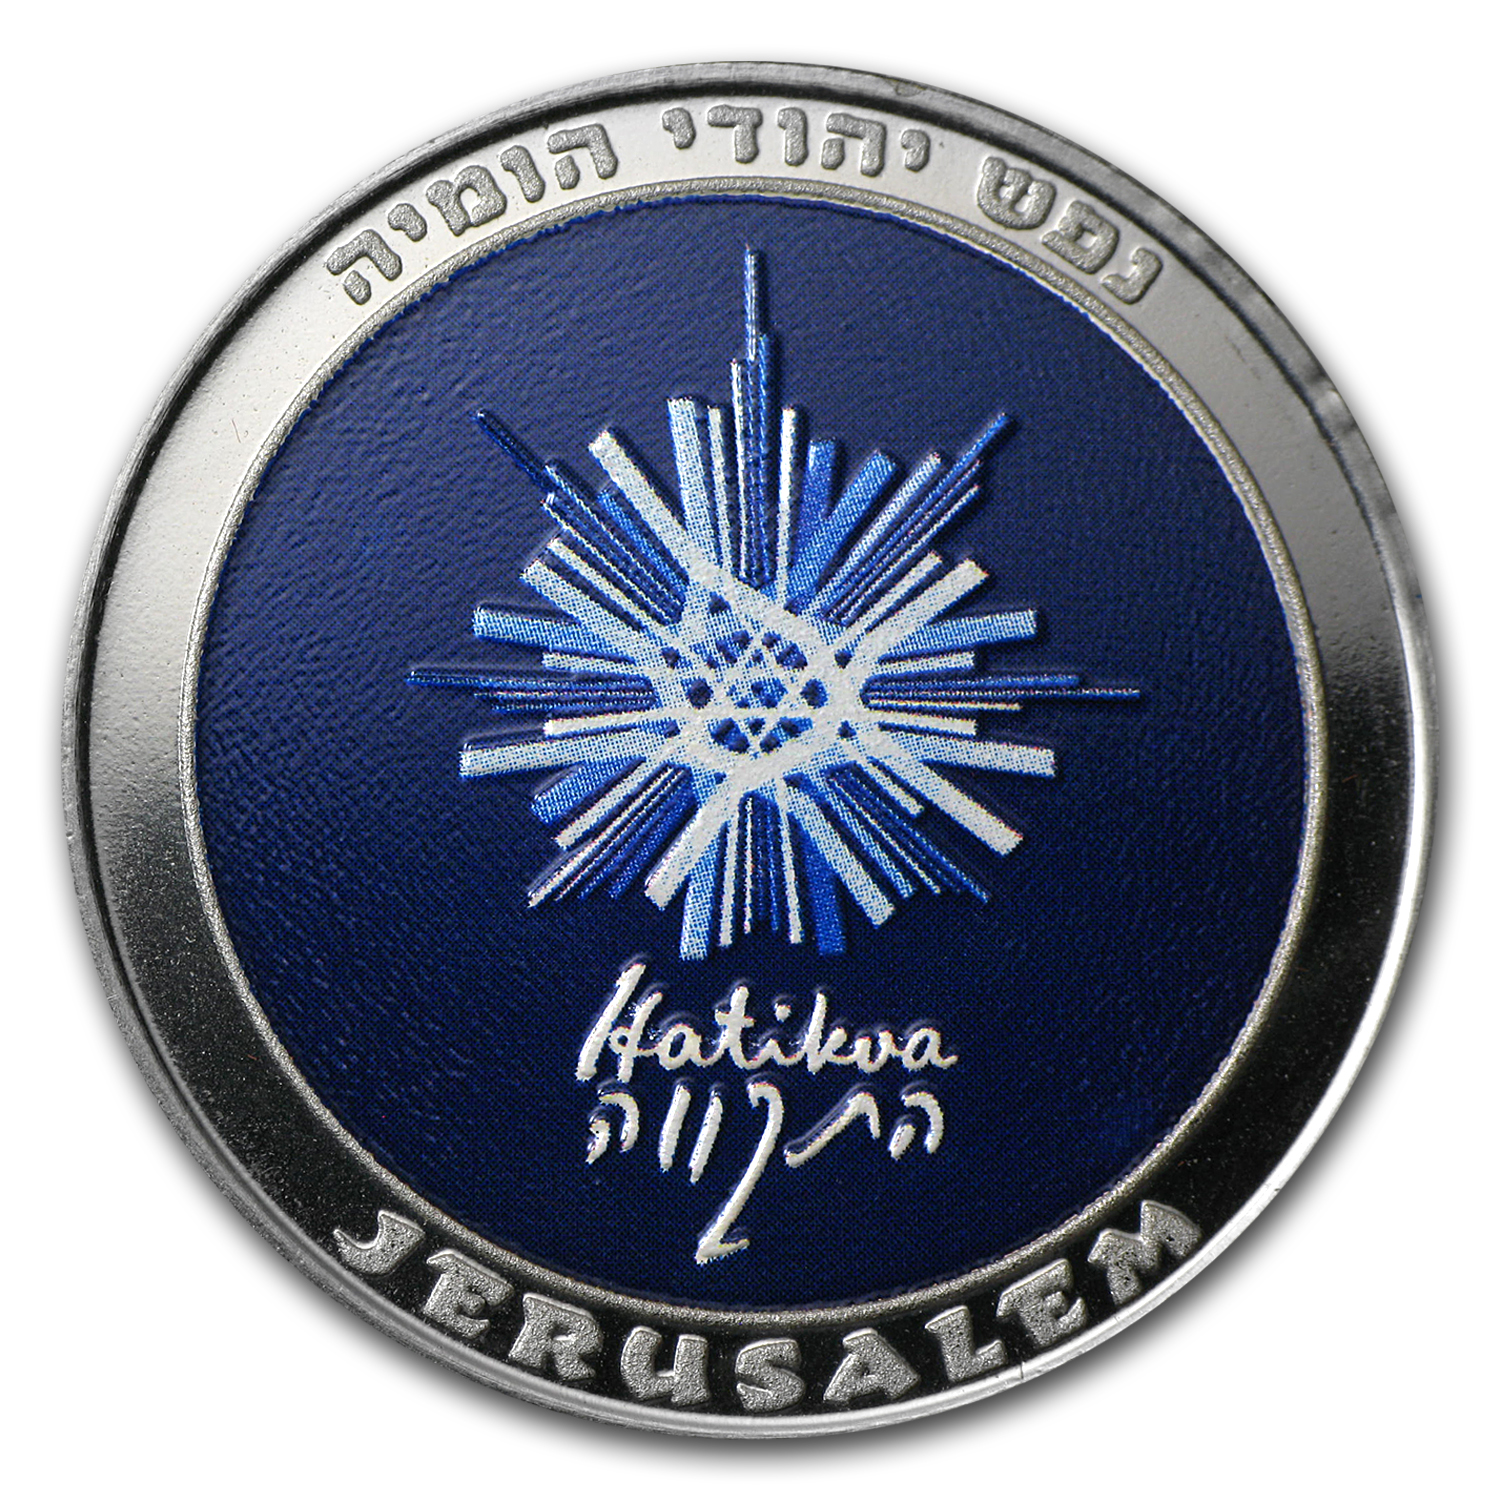 2008 Israel Hatikva w/ Color Proof Silver Medal